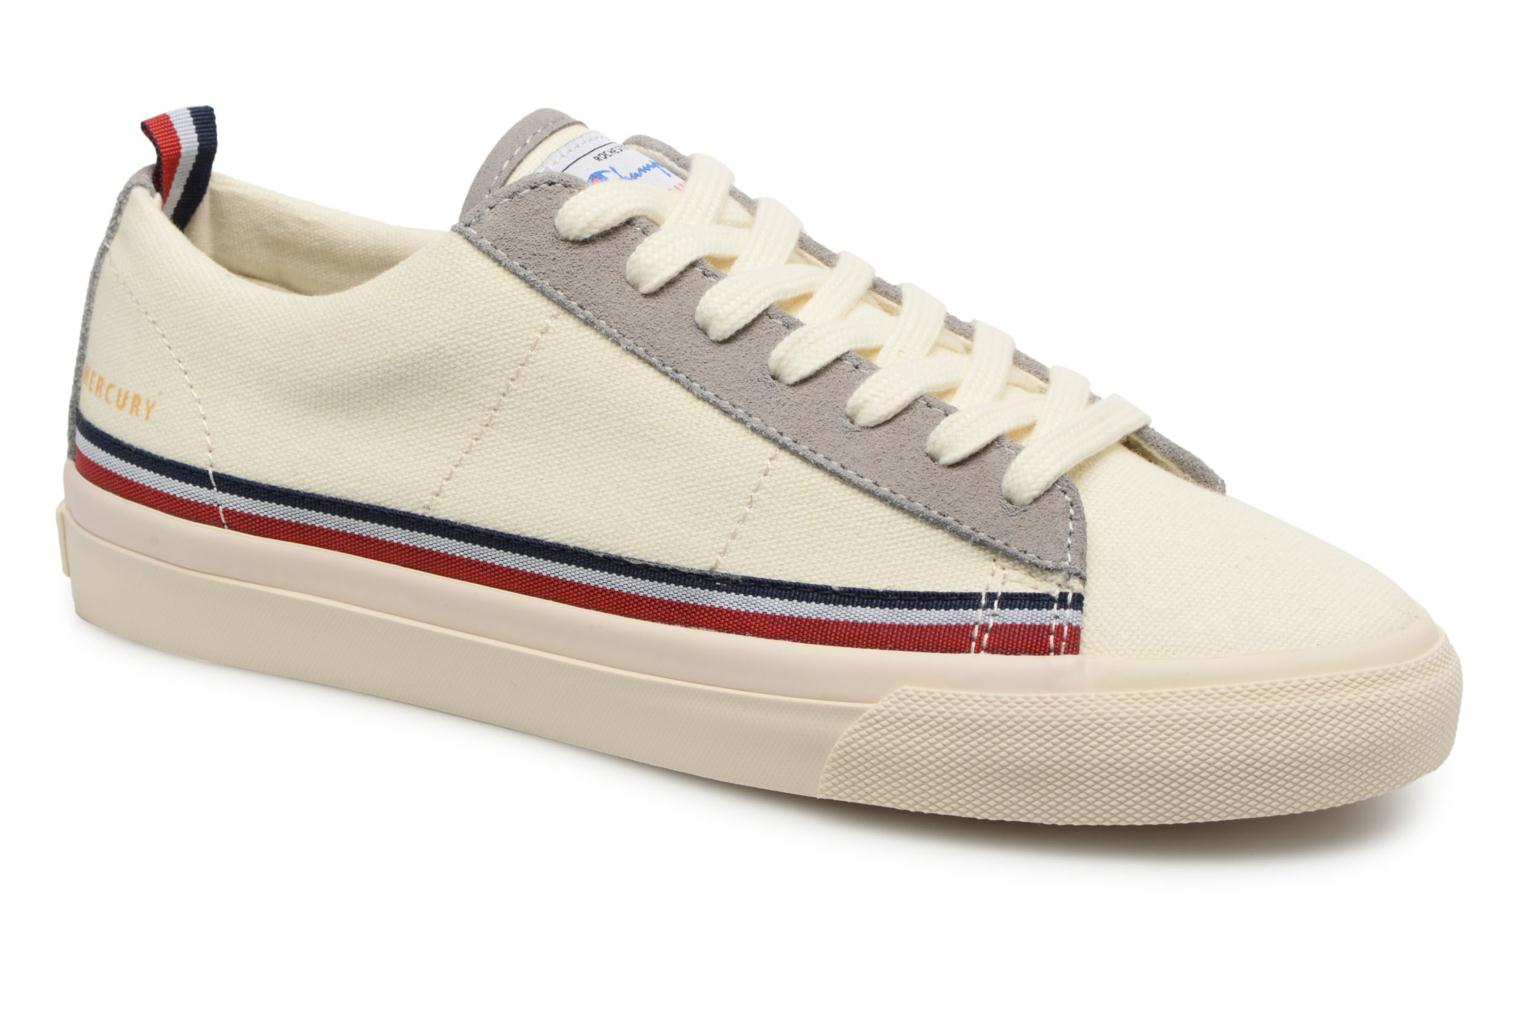 Zapatos cómodos y versátiles Champion Low Cut Shoe MERCURY LOW CANVAS W (Blanco) - Deportivas en Más cómodo